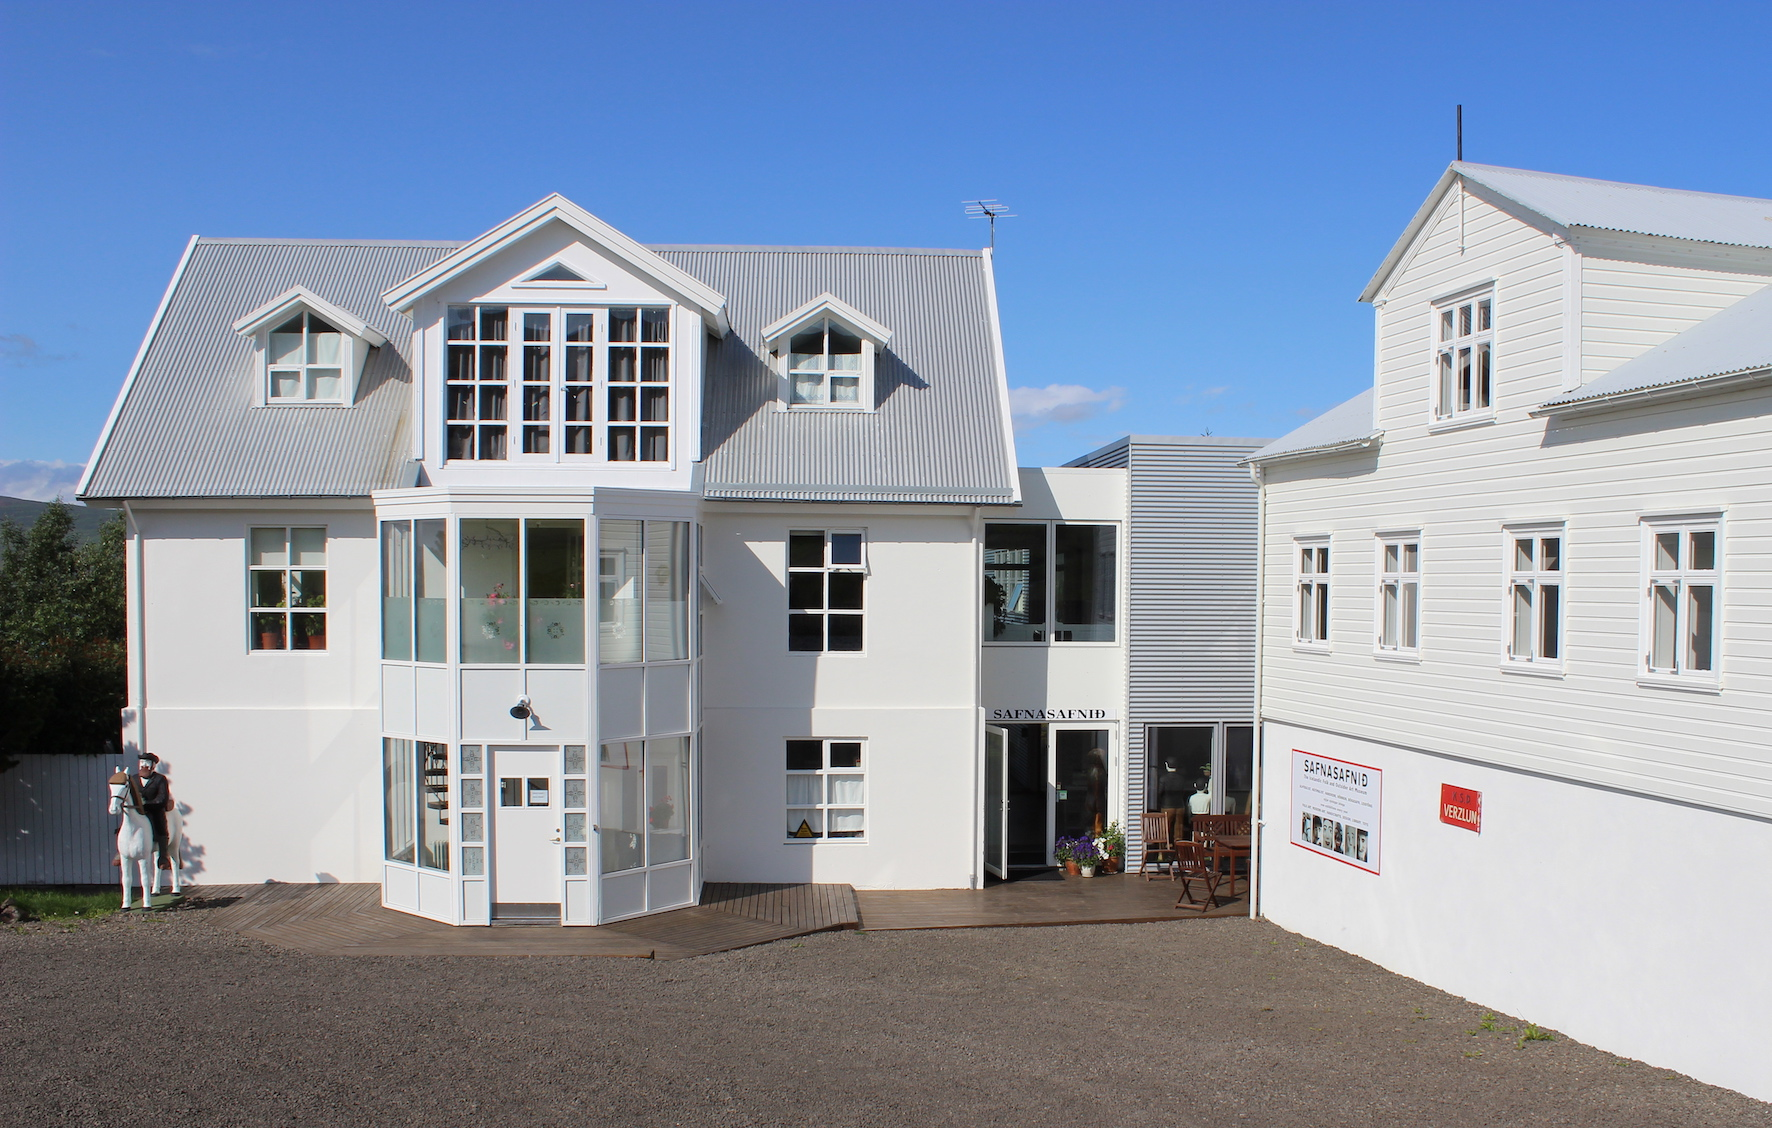 The Icelandic Folk and Outsider Art Museum